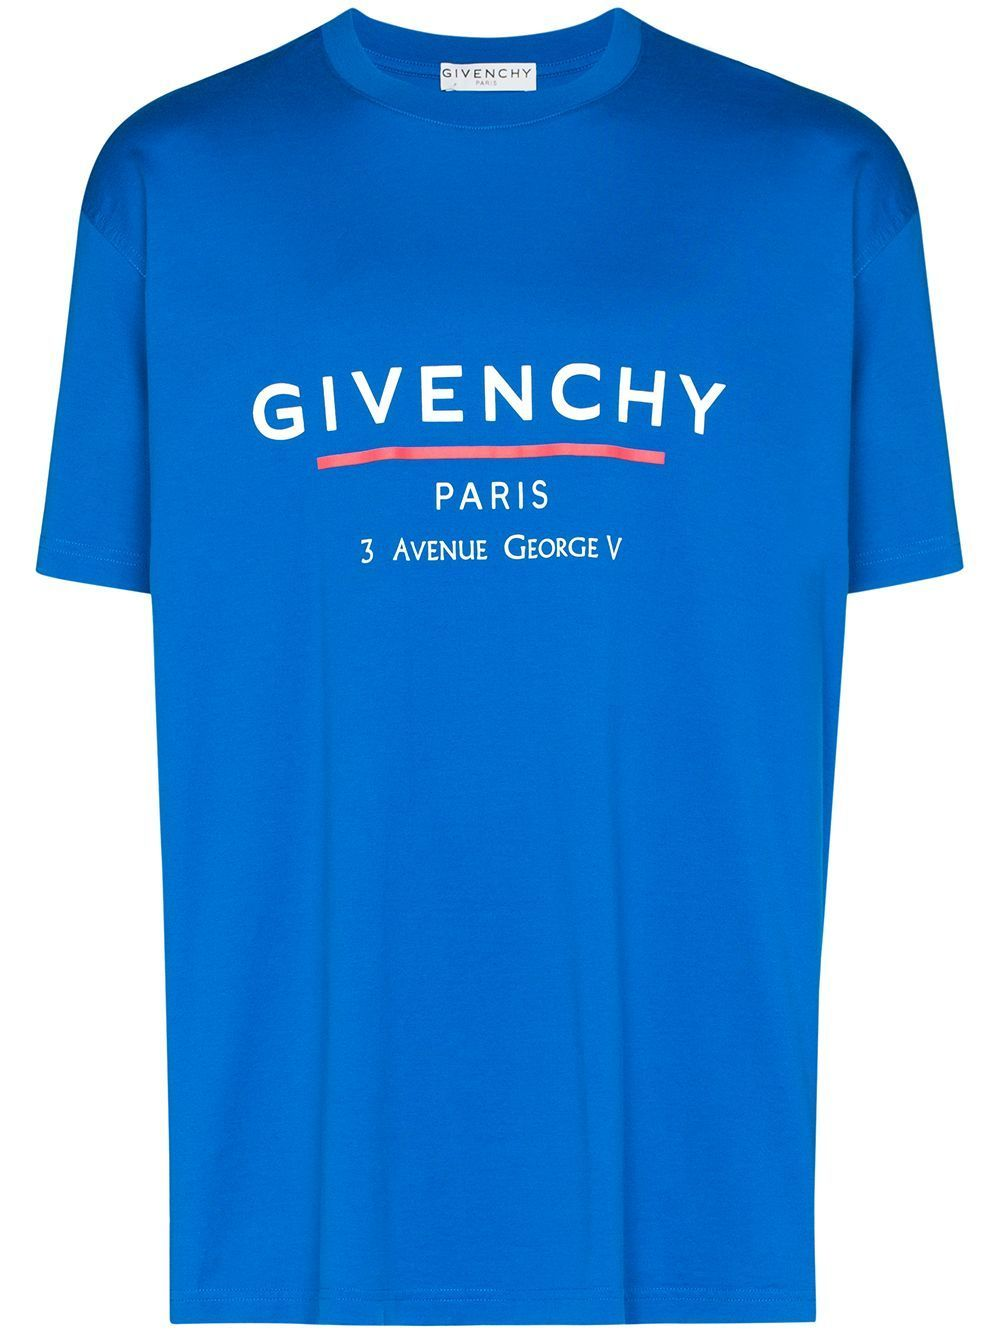 【GIVENCHY】ロゴ Tシャツ (GIVENCHY/Tシャツ・カットソー) 70350259